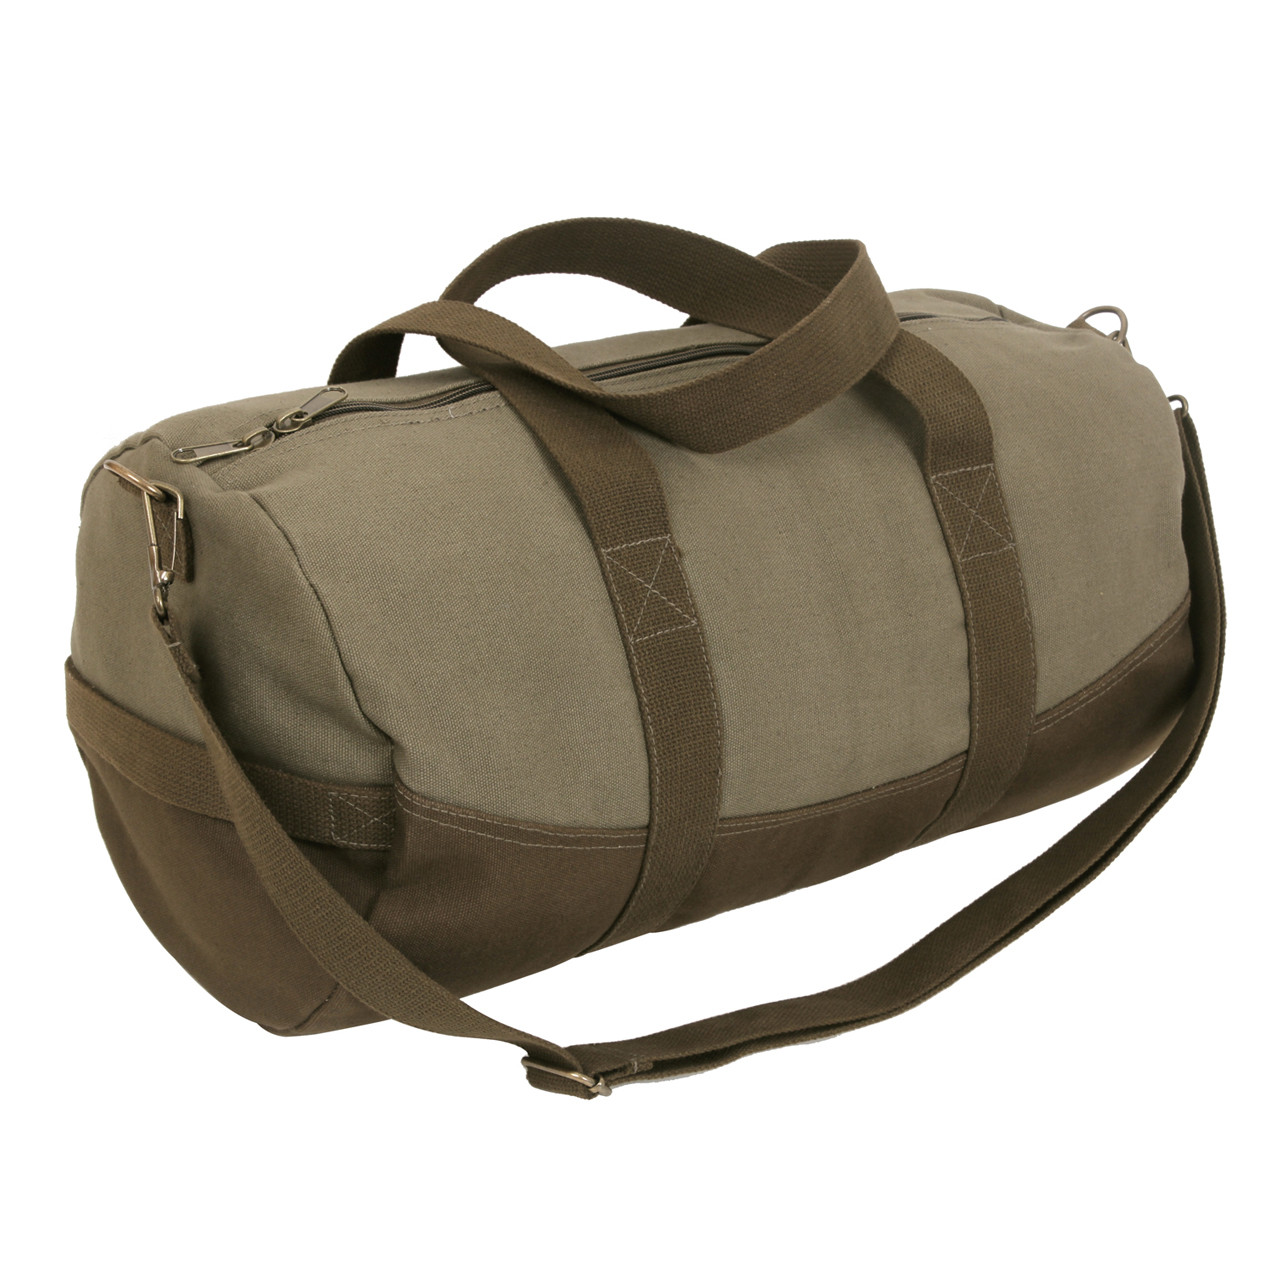 Shop Moss Brown Canvas Gear Bags - Fatigues Army Navy 5a9d81219fe94